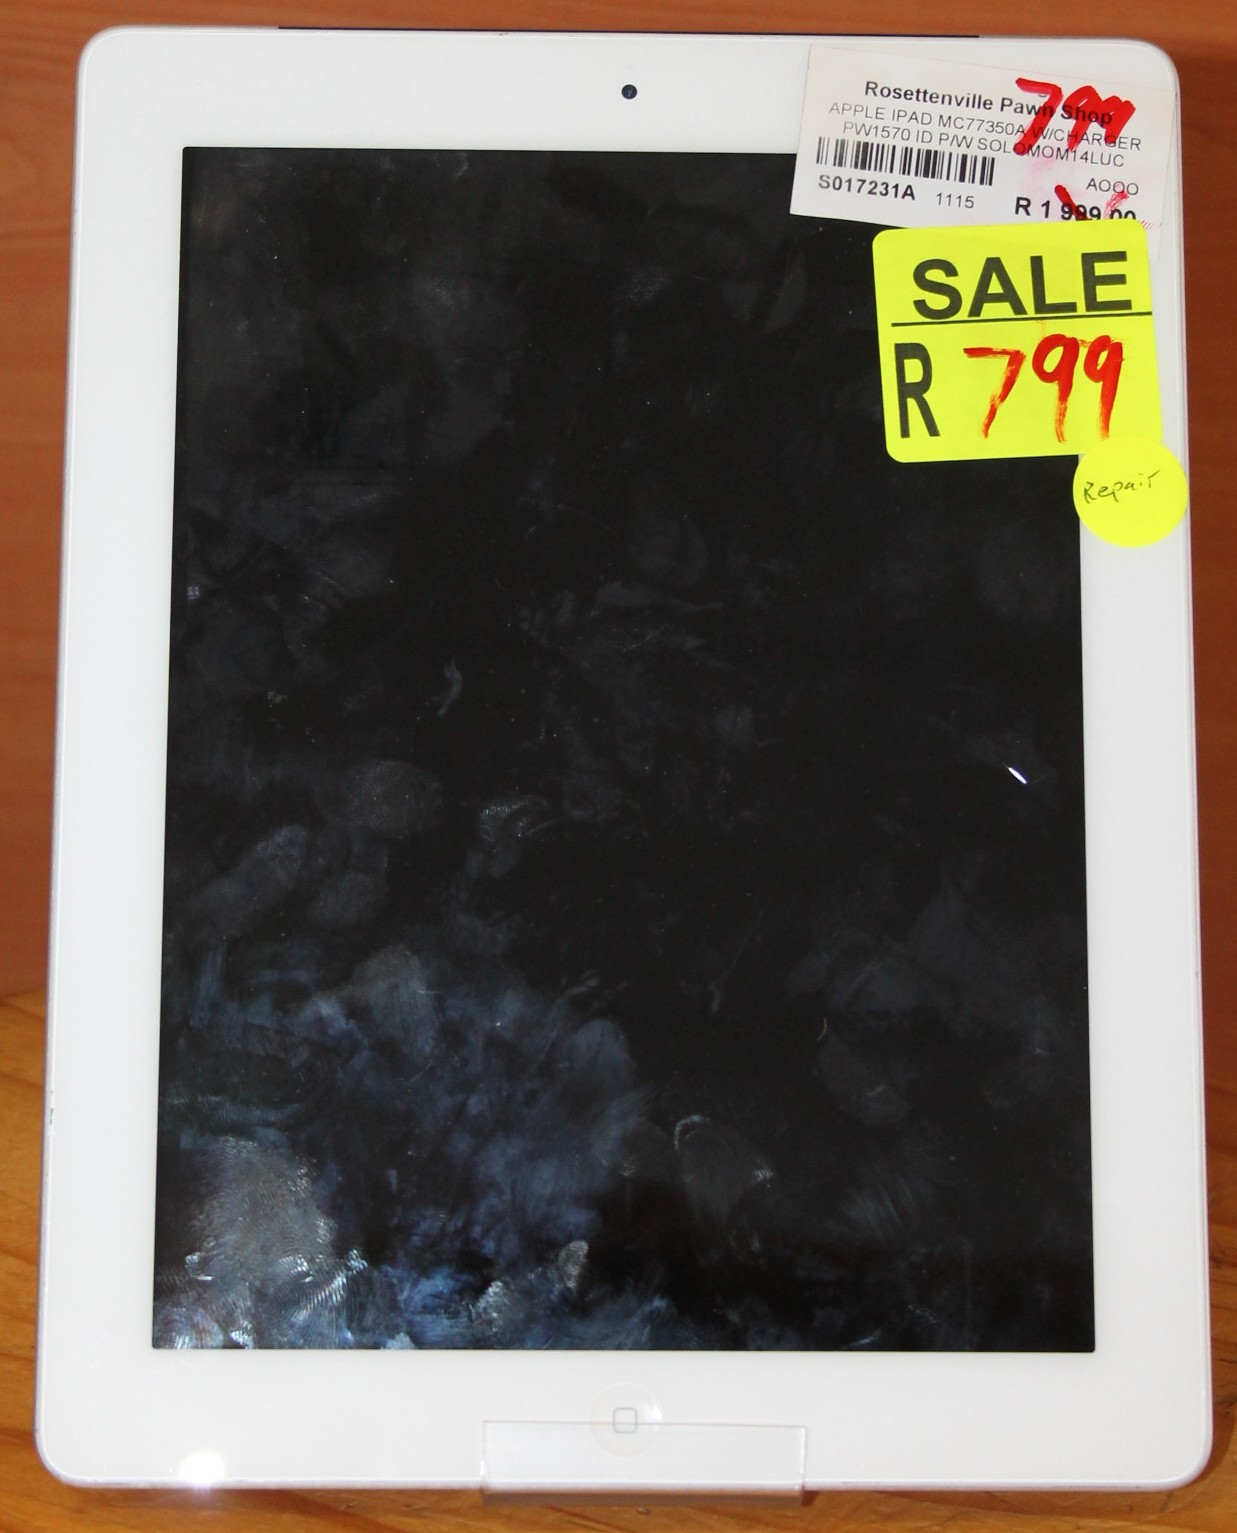 Apple ipad S017231a #Rosettenvillepawnshop